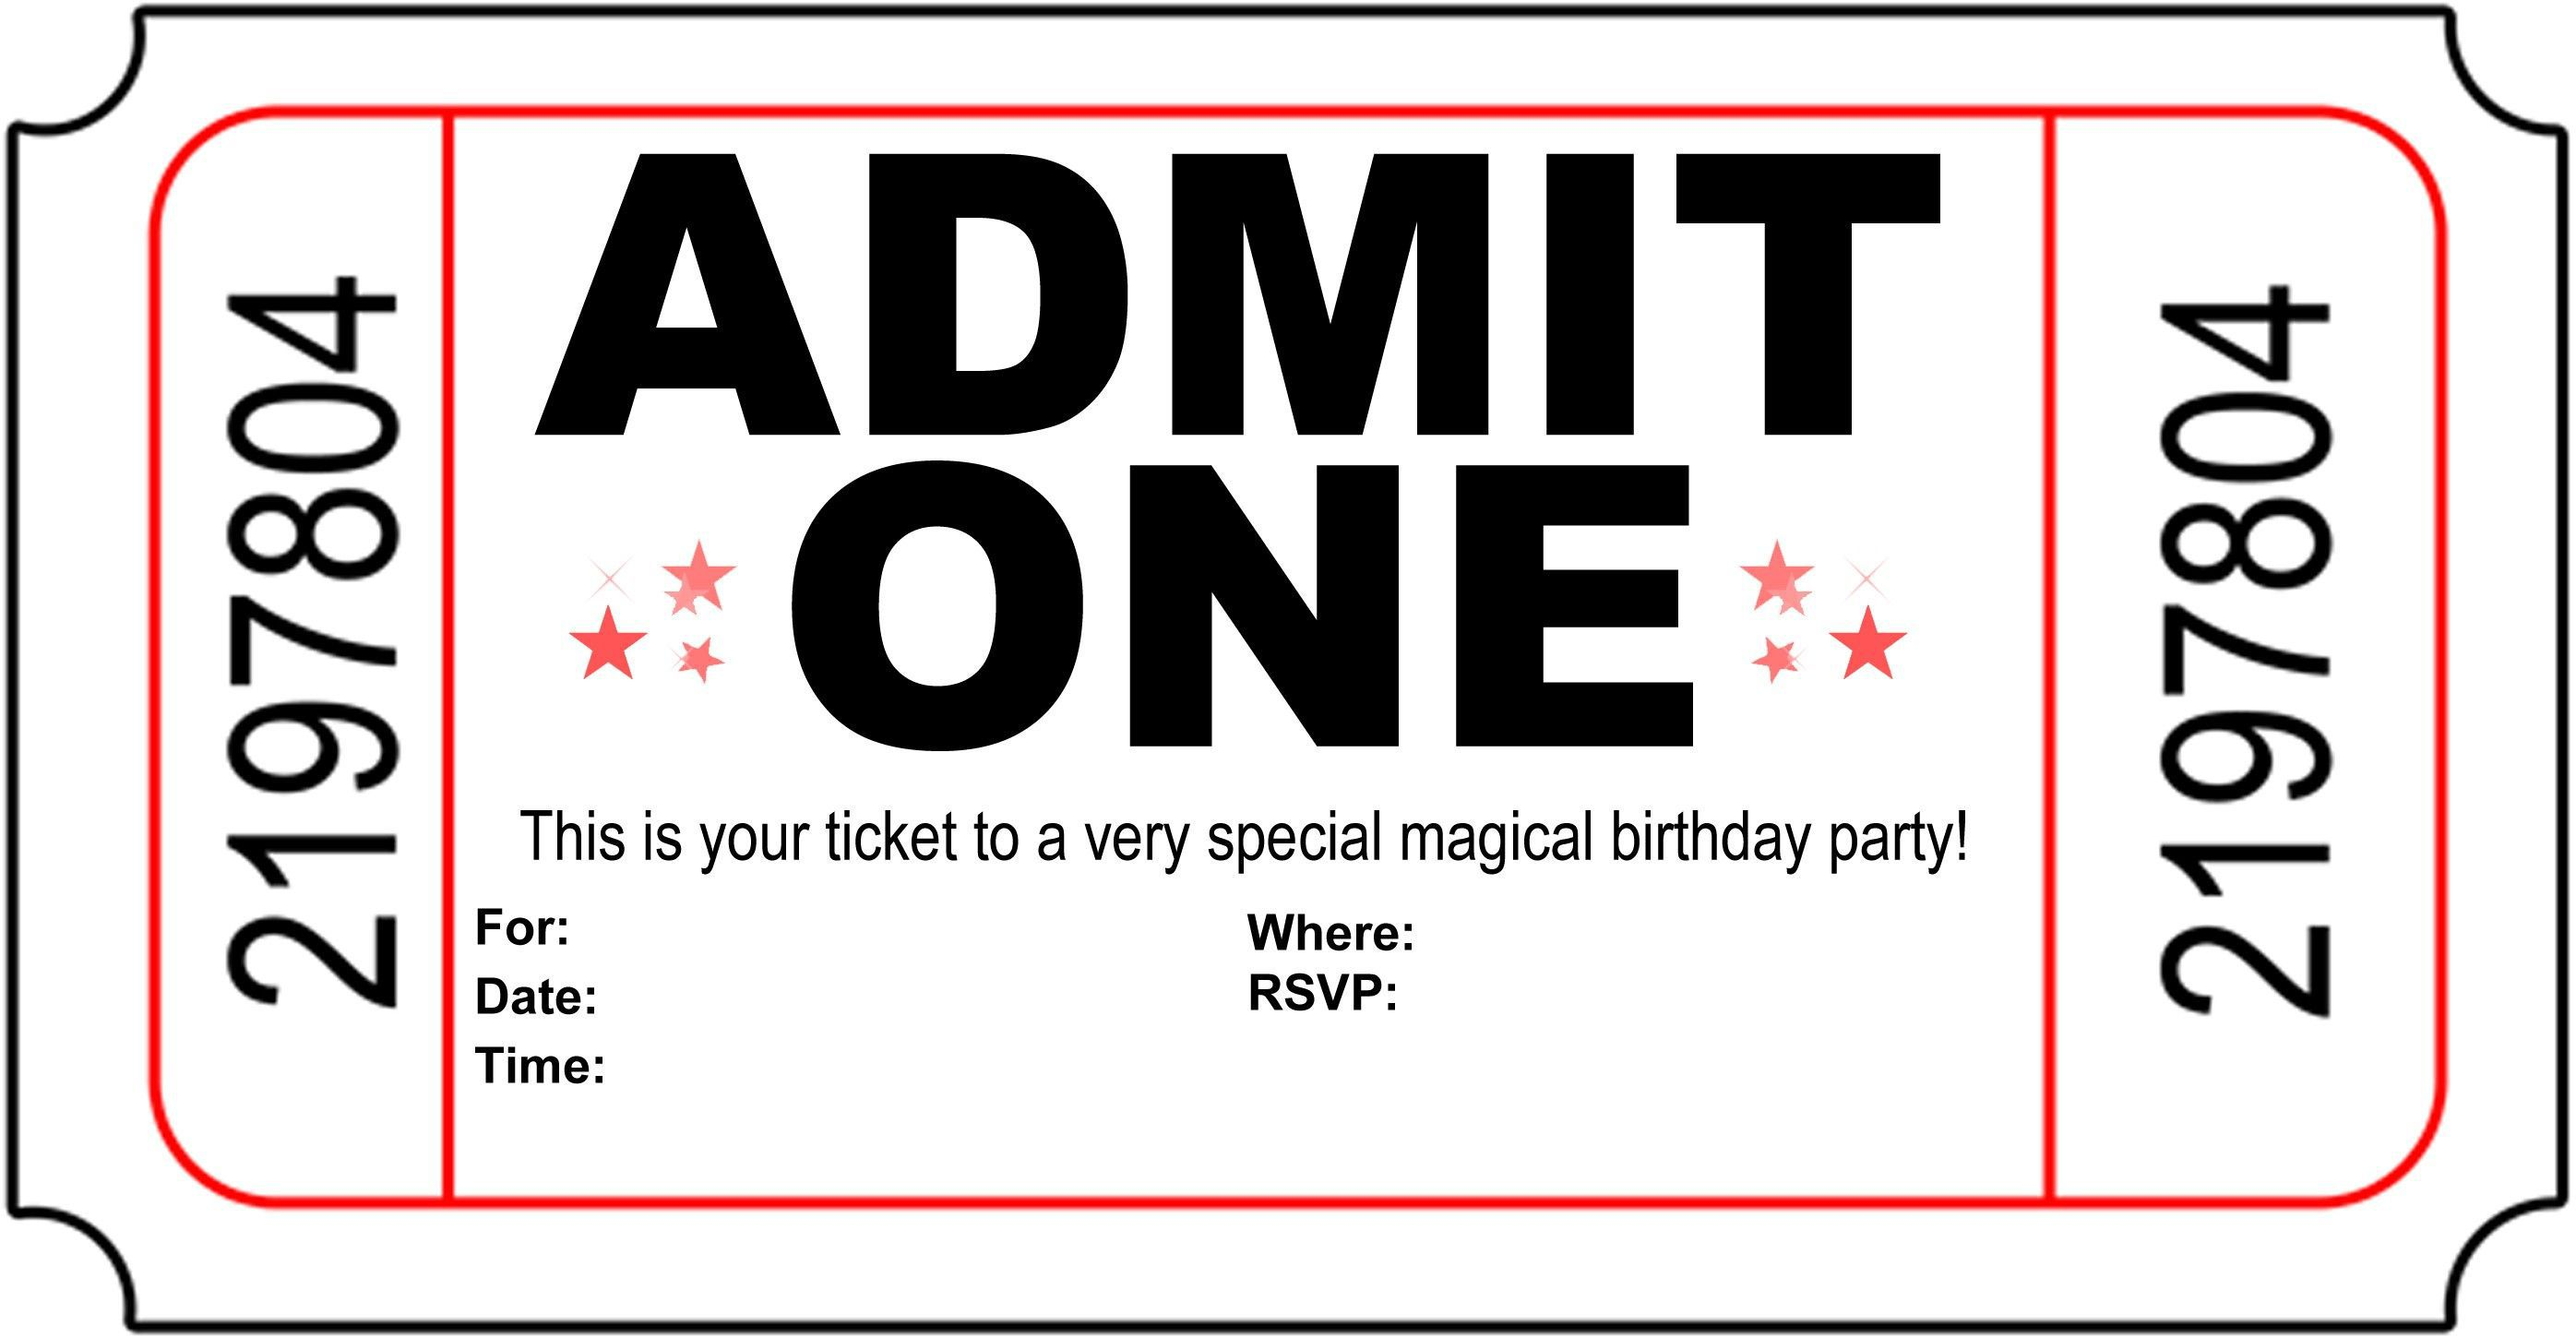 004 Astounding Free Printable Movie Ticket Birthday Party Invitation Inspiration Full